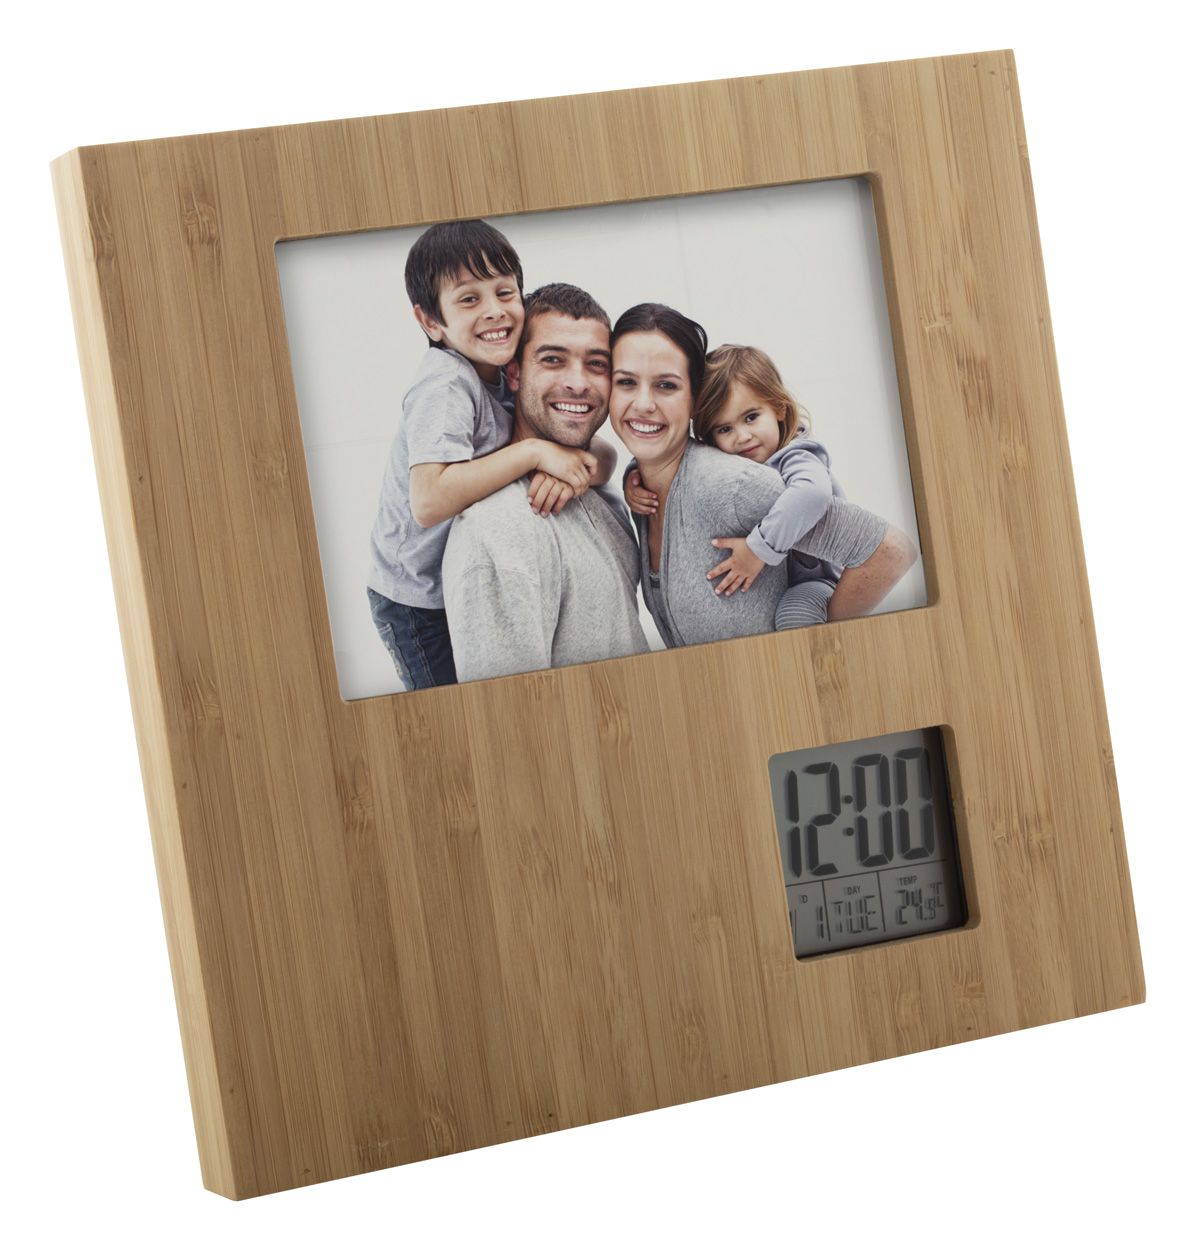 Booframe bamboo photo frame